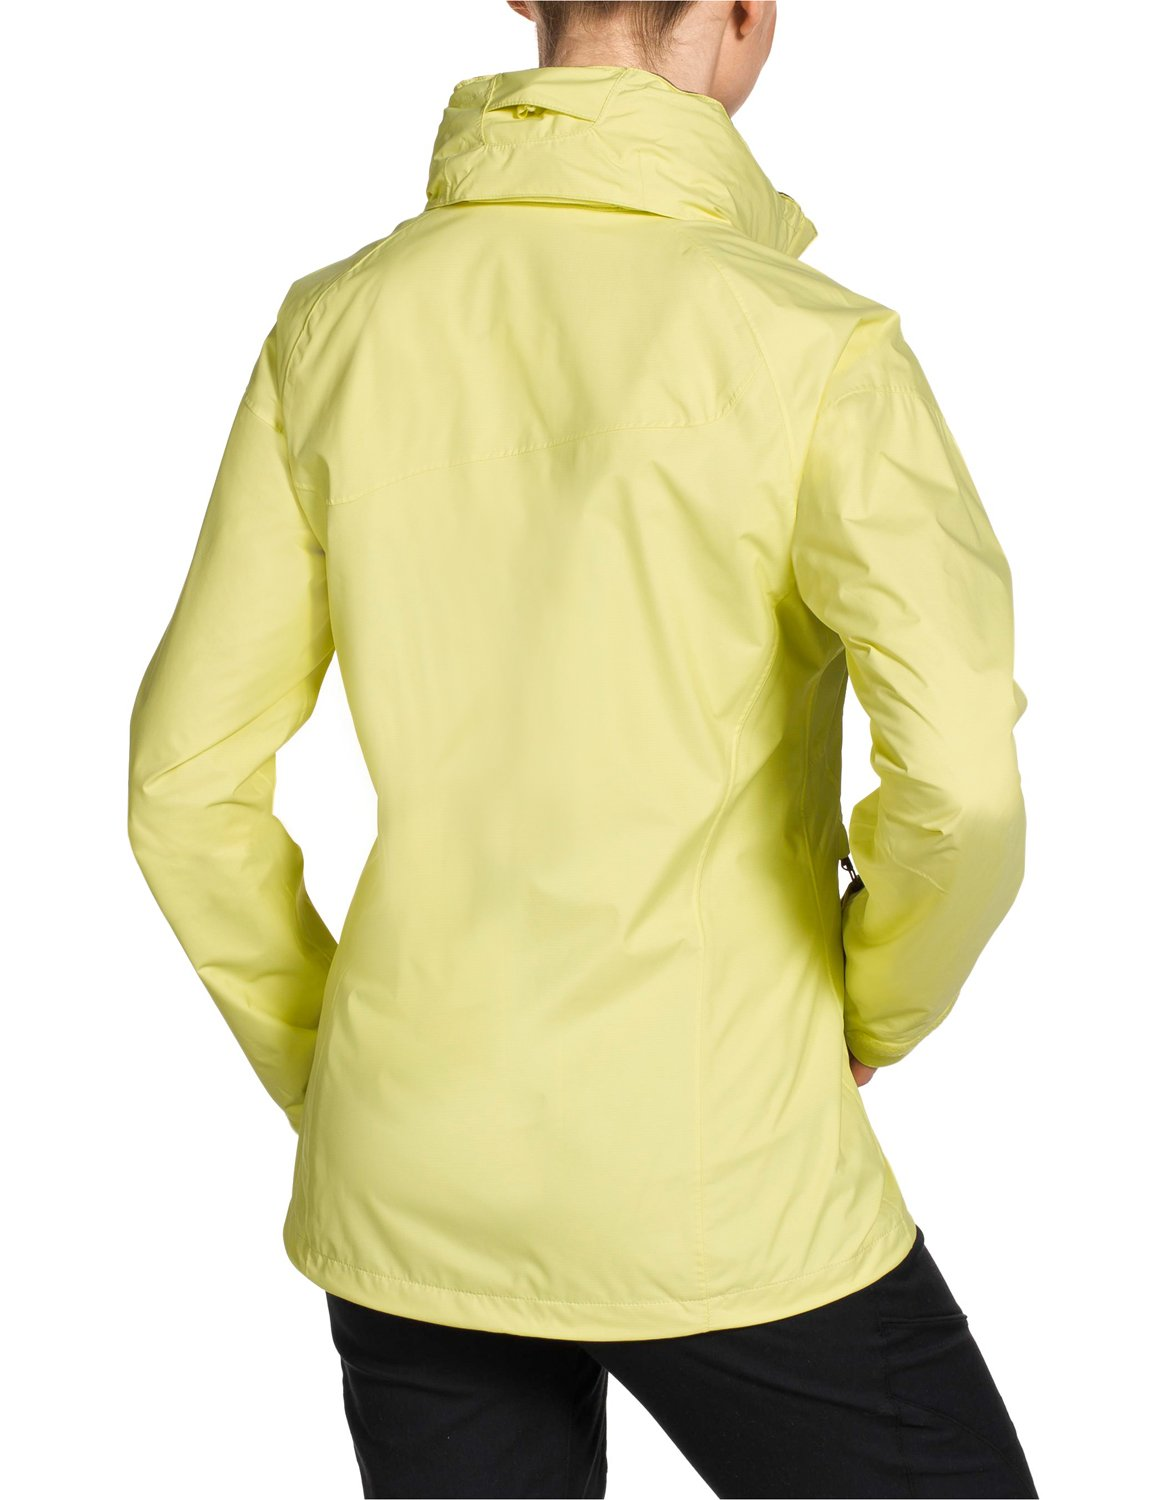 Jack Wolfskin Women's Jacket Wind Supercell Texapore Shell Is Super Durable